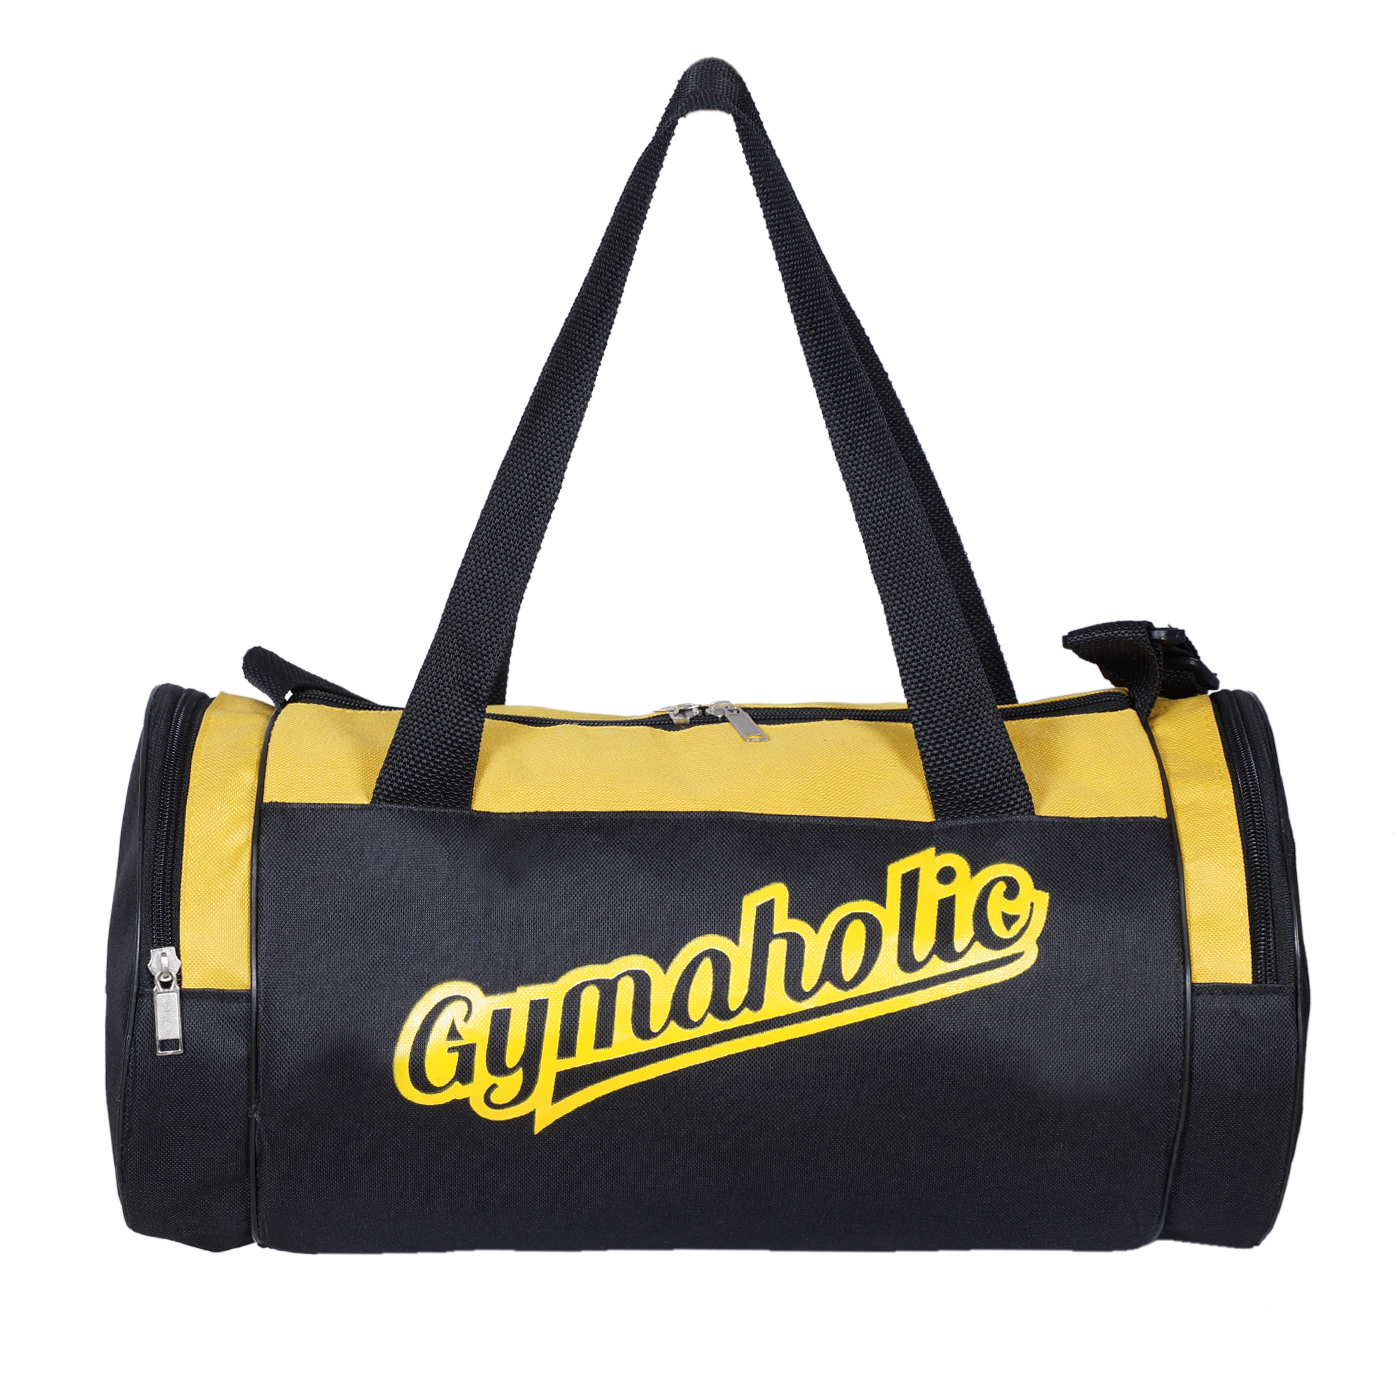 SPORTS BAG Manufacturers, Wholesale Suppliers